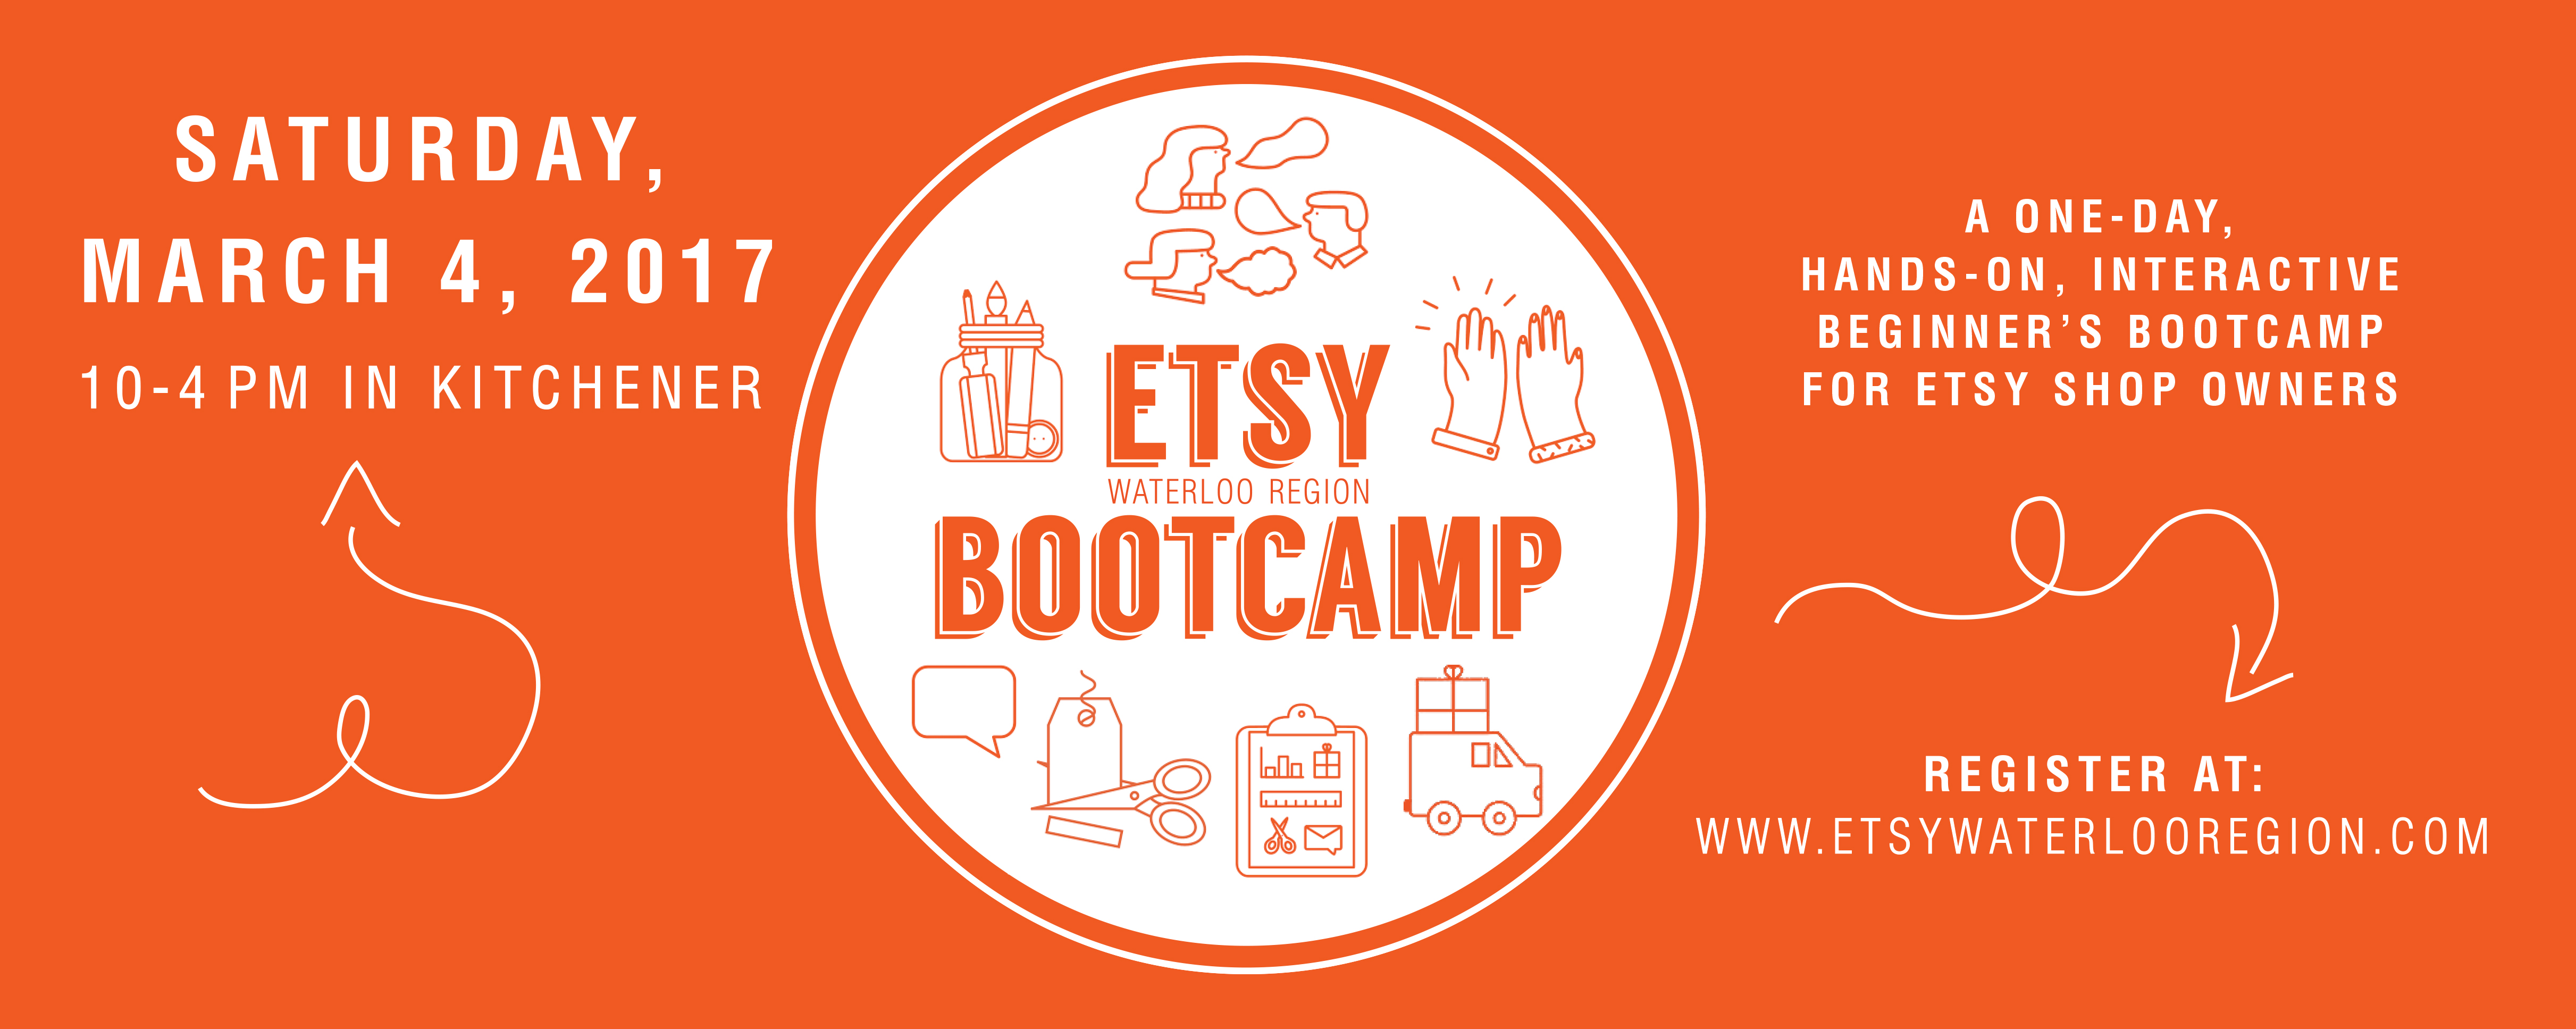 Small Business Centre Kitchener Bootcamp Etsy Waterloo Region